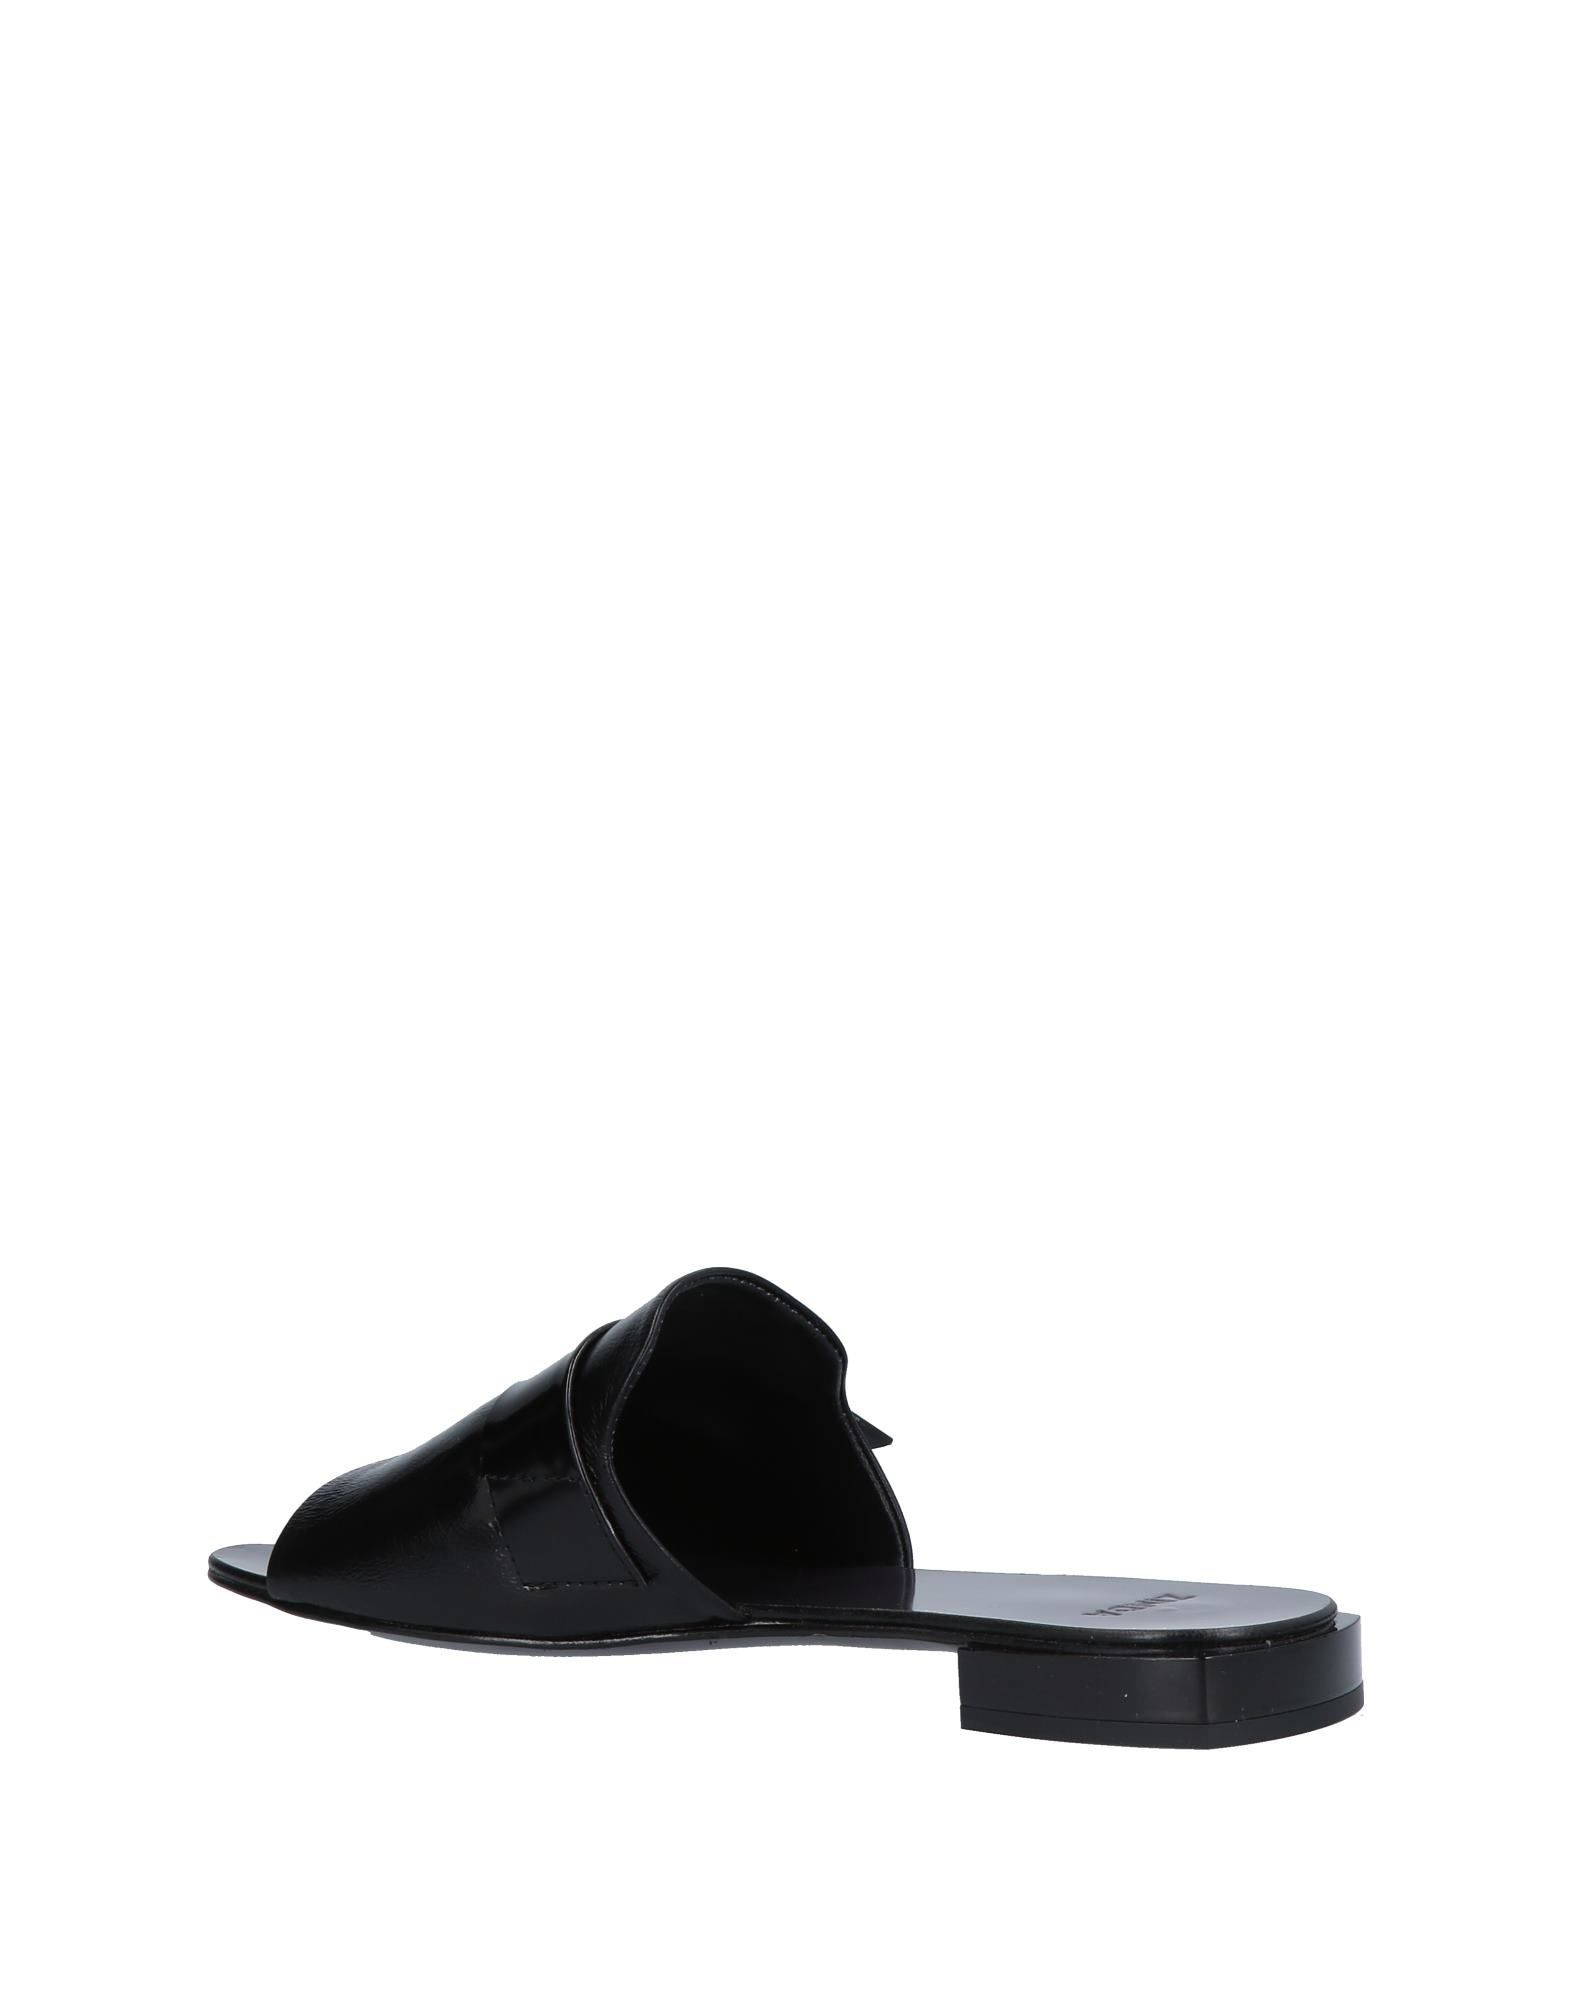 FOOTWEAR Zinda Black Woman Leather